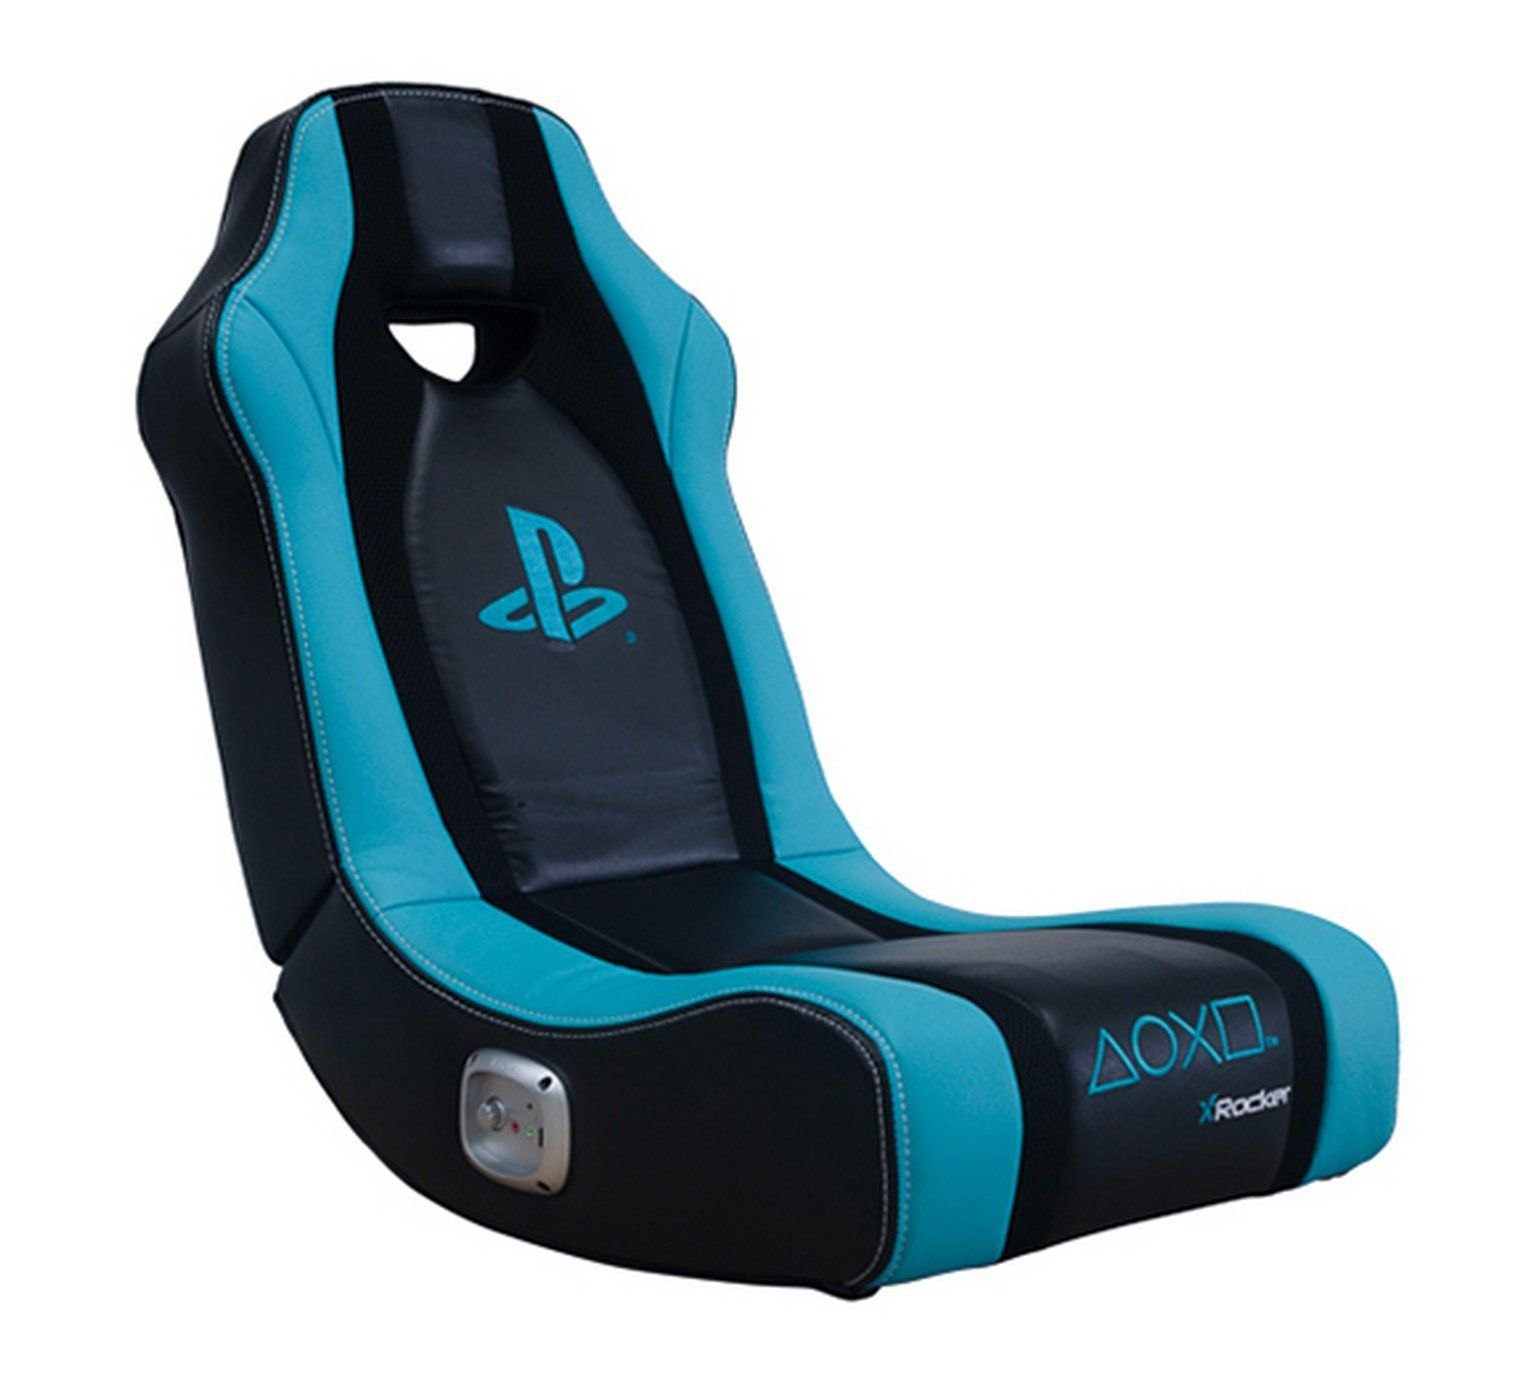 Buy X Rocker Wraith Playstation Gaming Chair Gaming Chairs